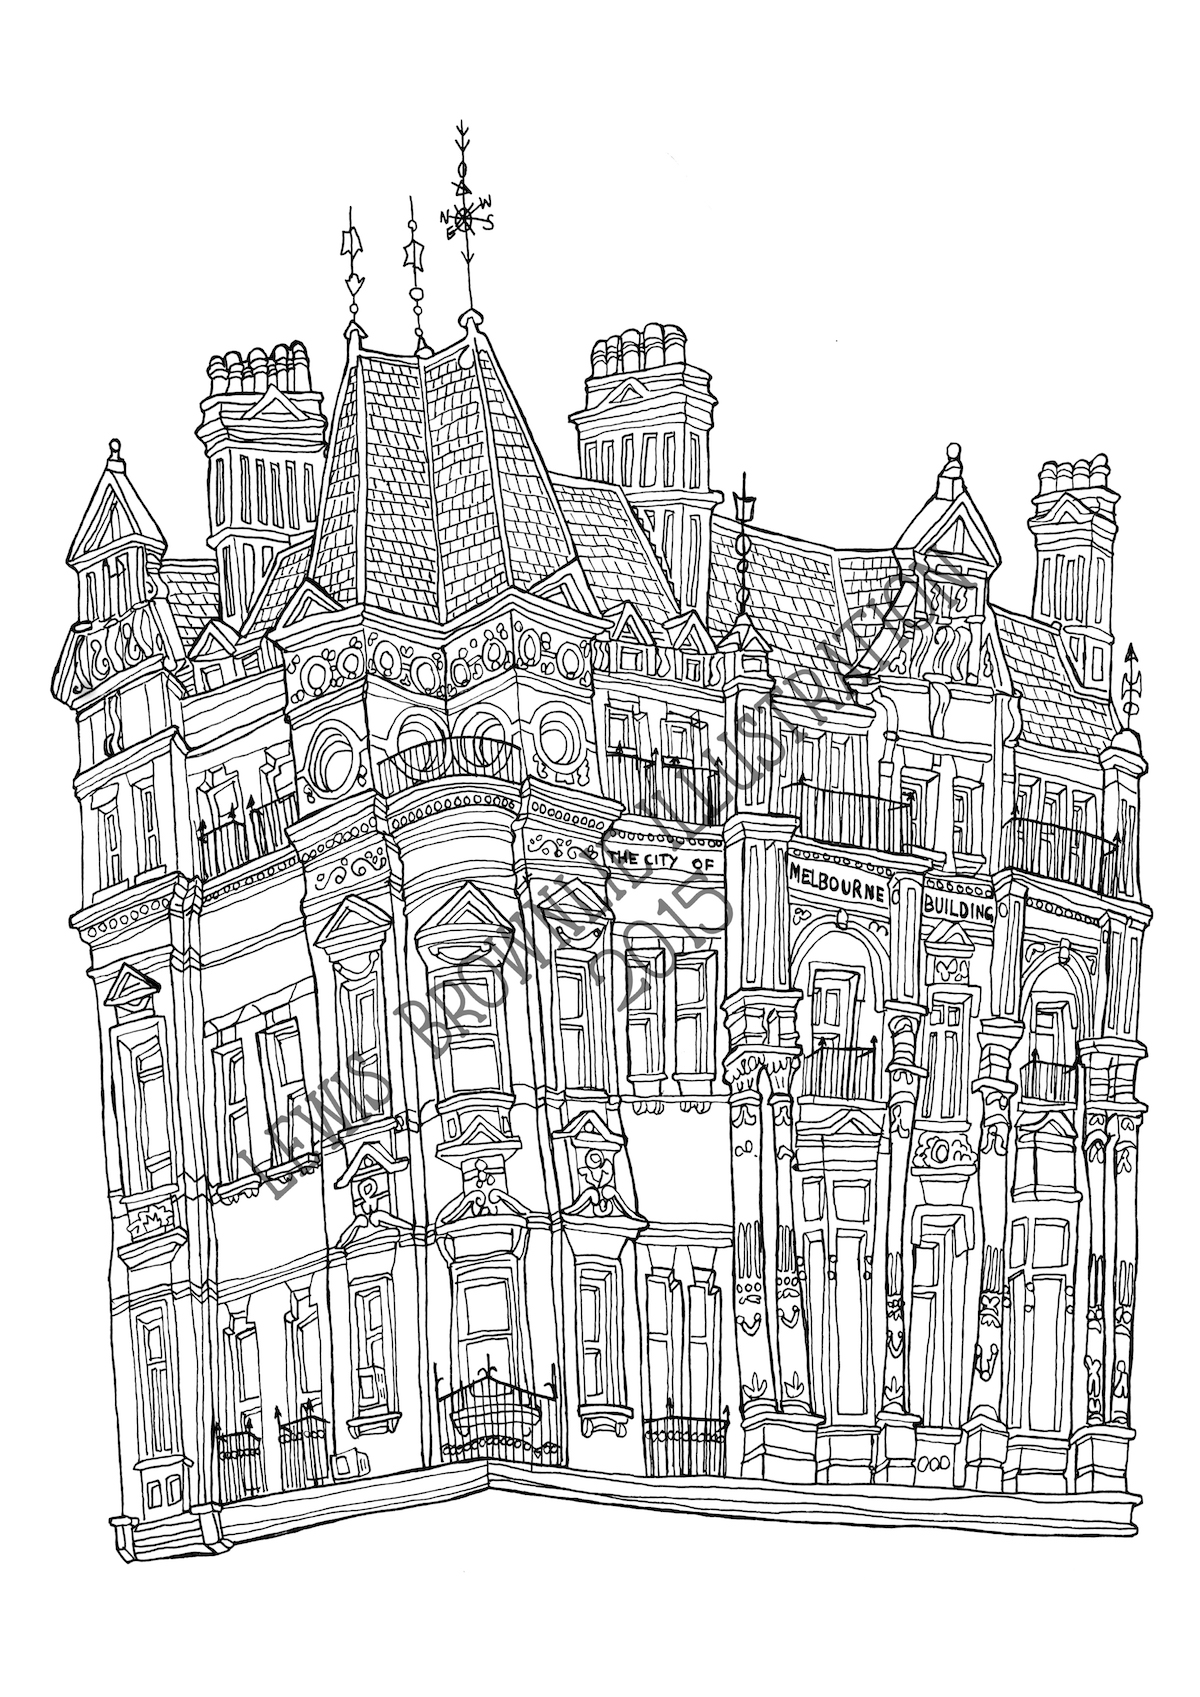 COLOURING BOOK - 11 -CITY OF MELBOURNE BUILDING - blog